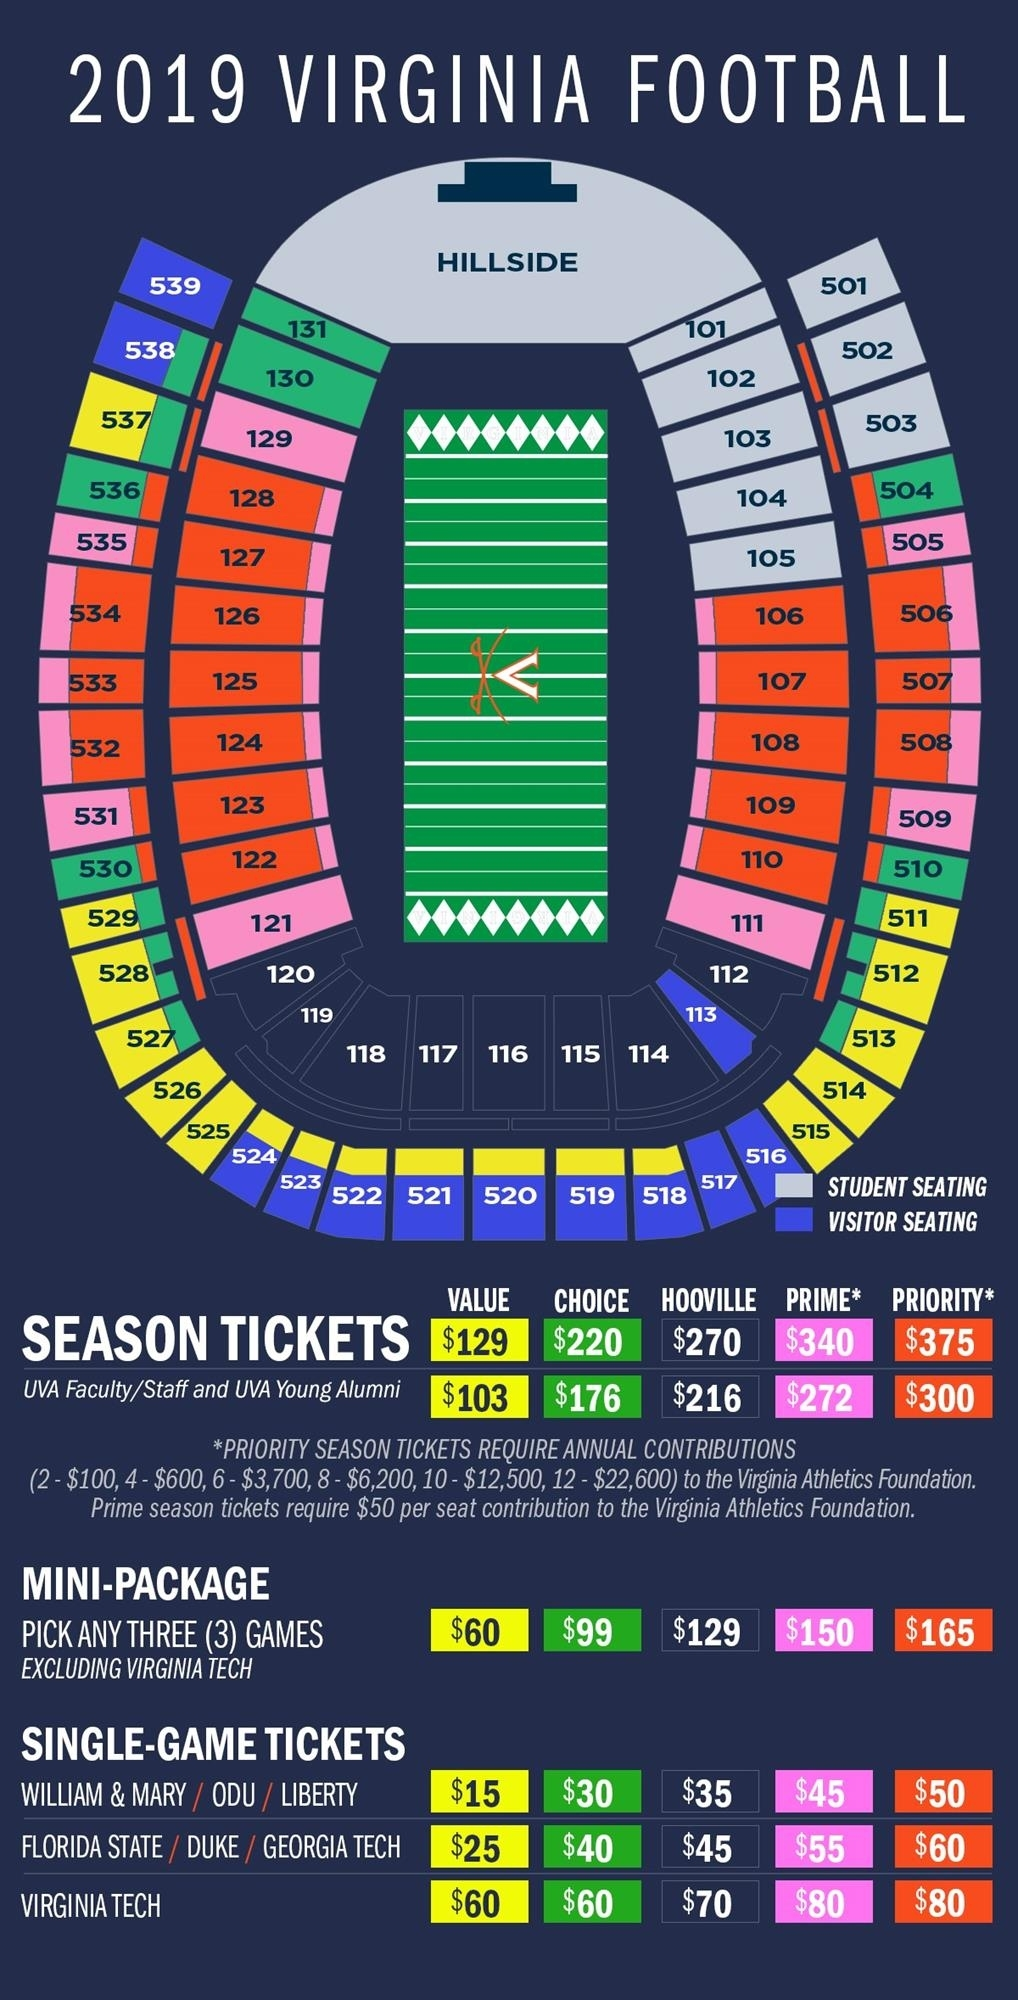 2019 Football Ticket Information - University Of Virginia throughout Super Bowl Seating Chart Prices